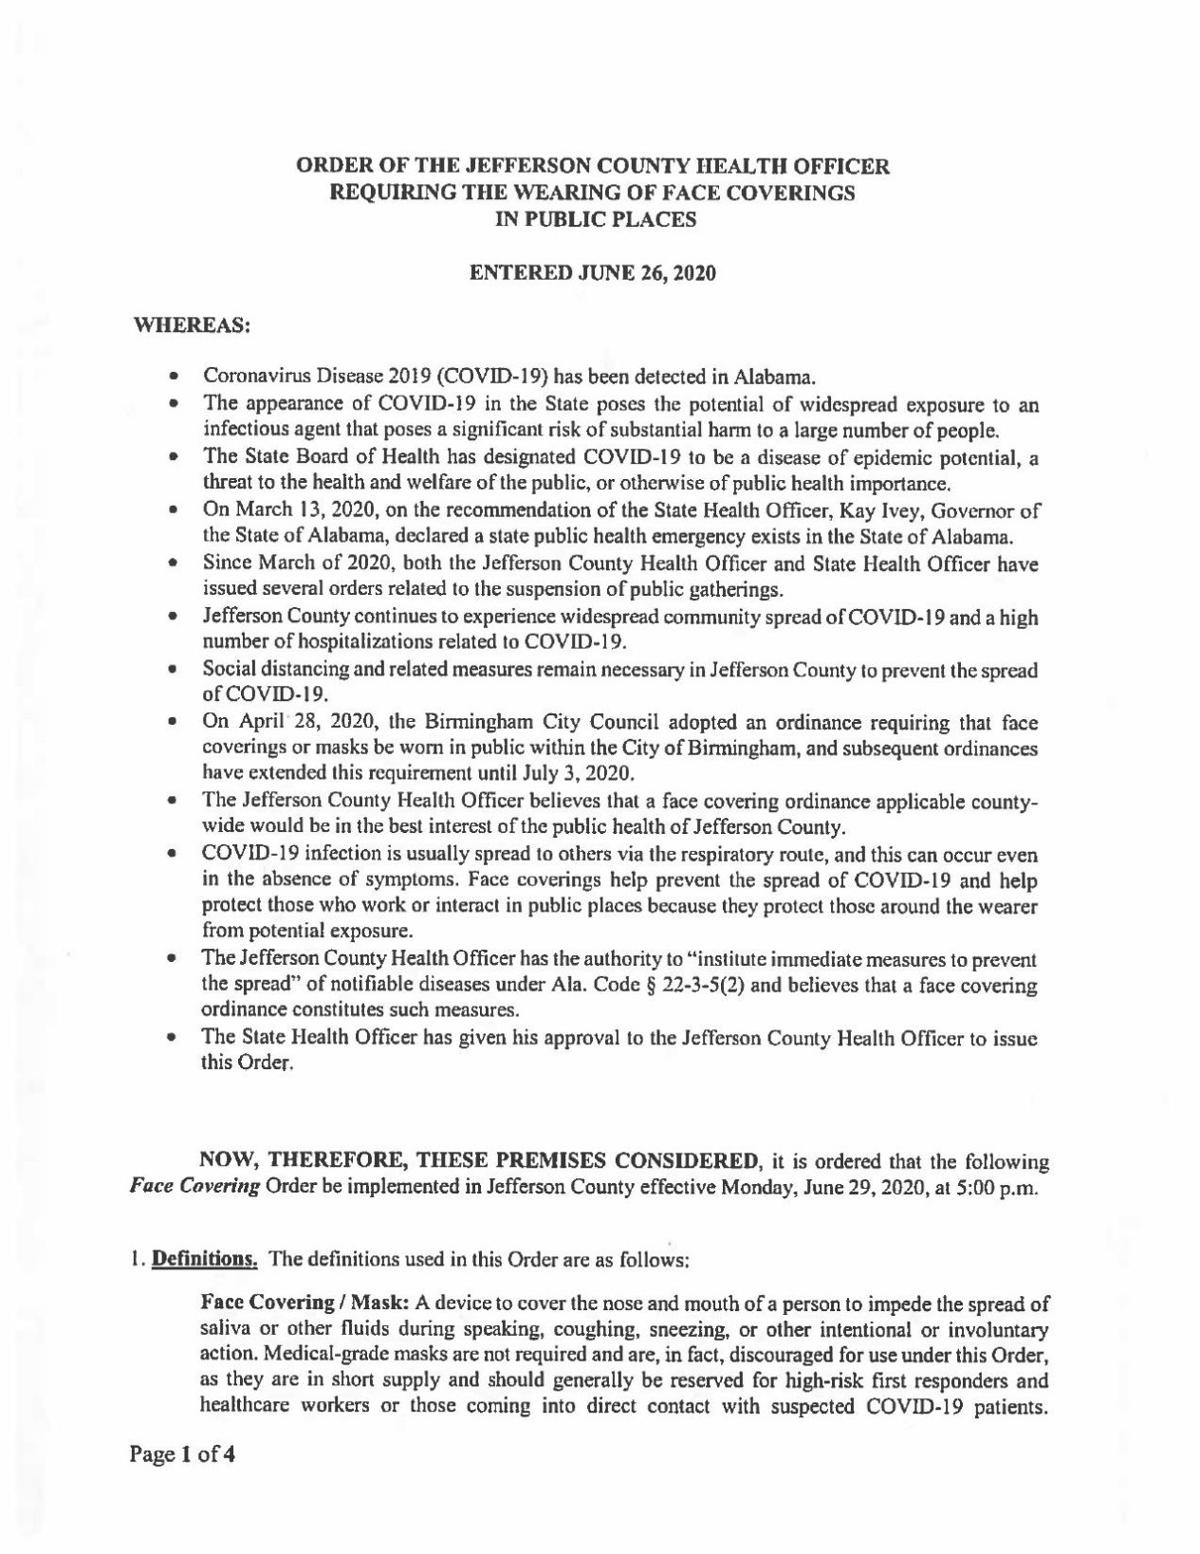 Jefferson County Face Covering Order June 26, 2020.pdf